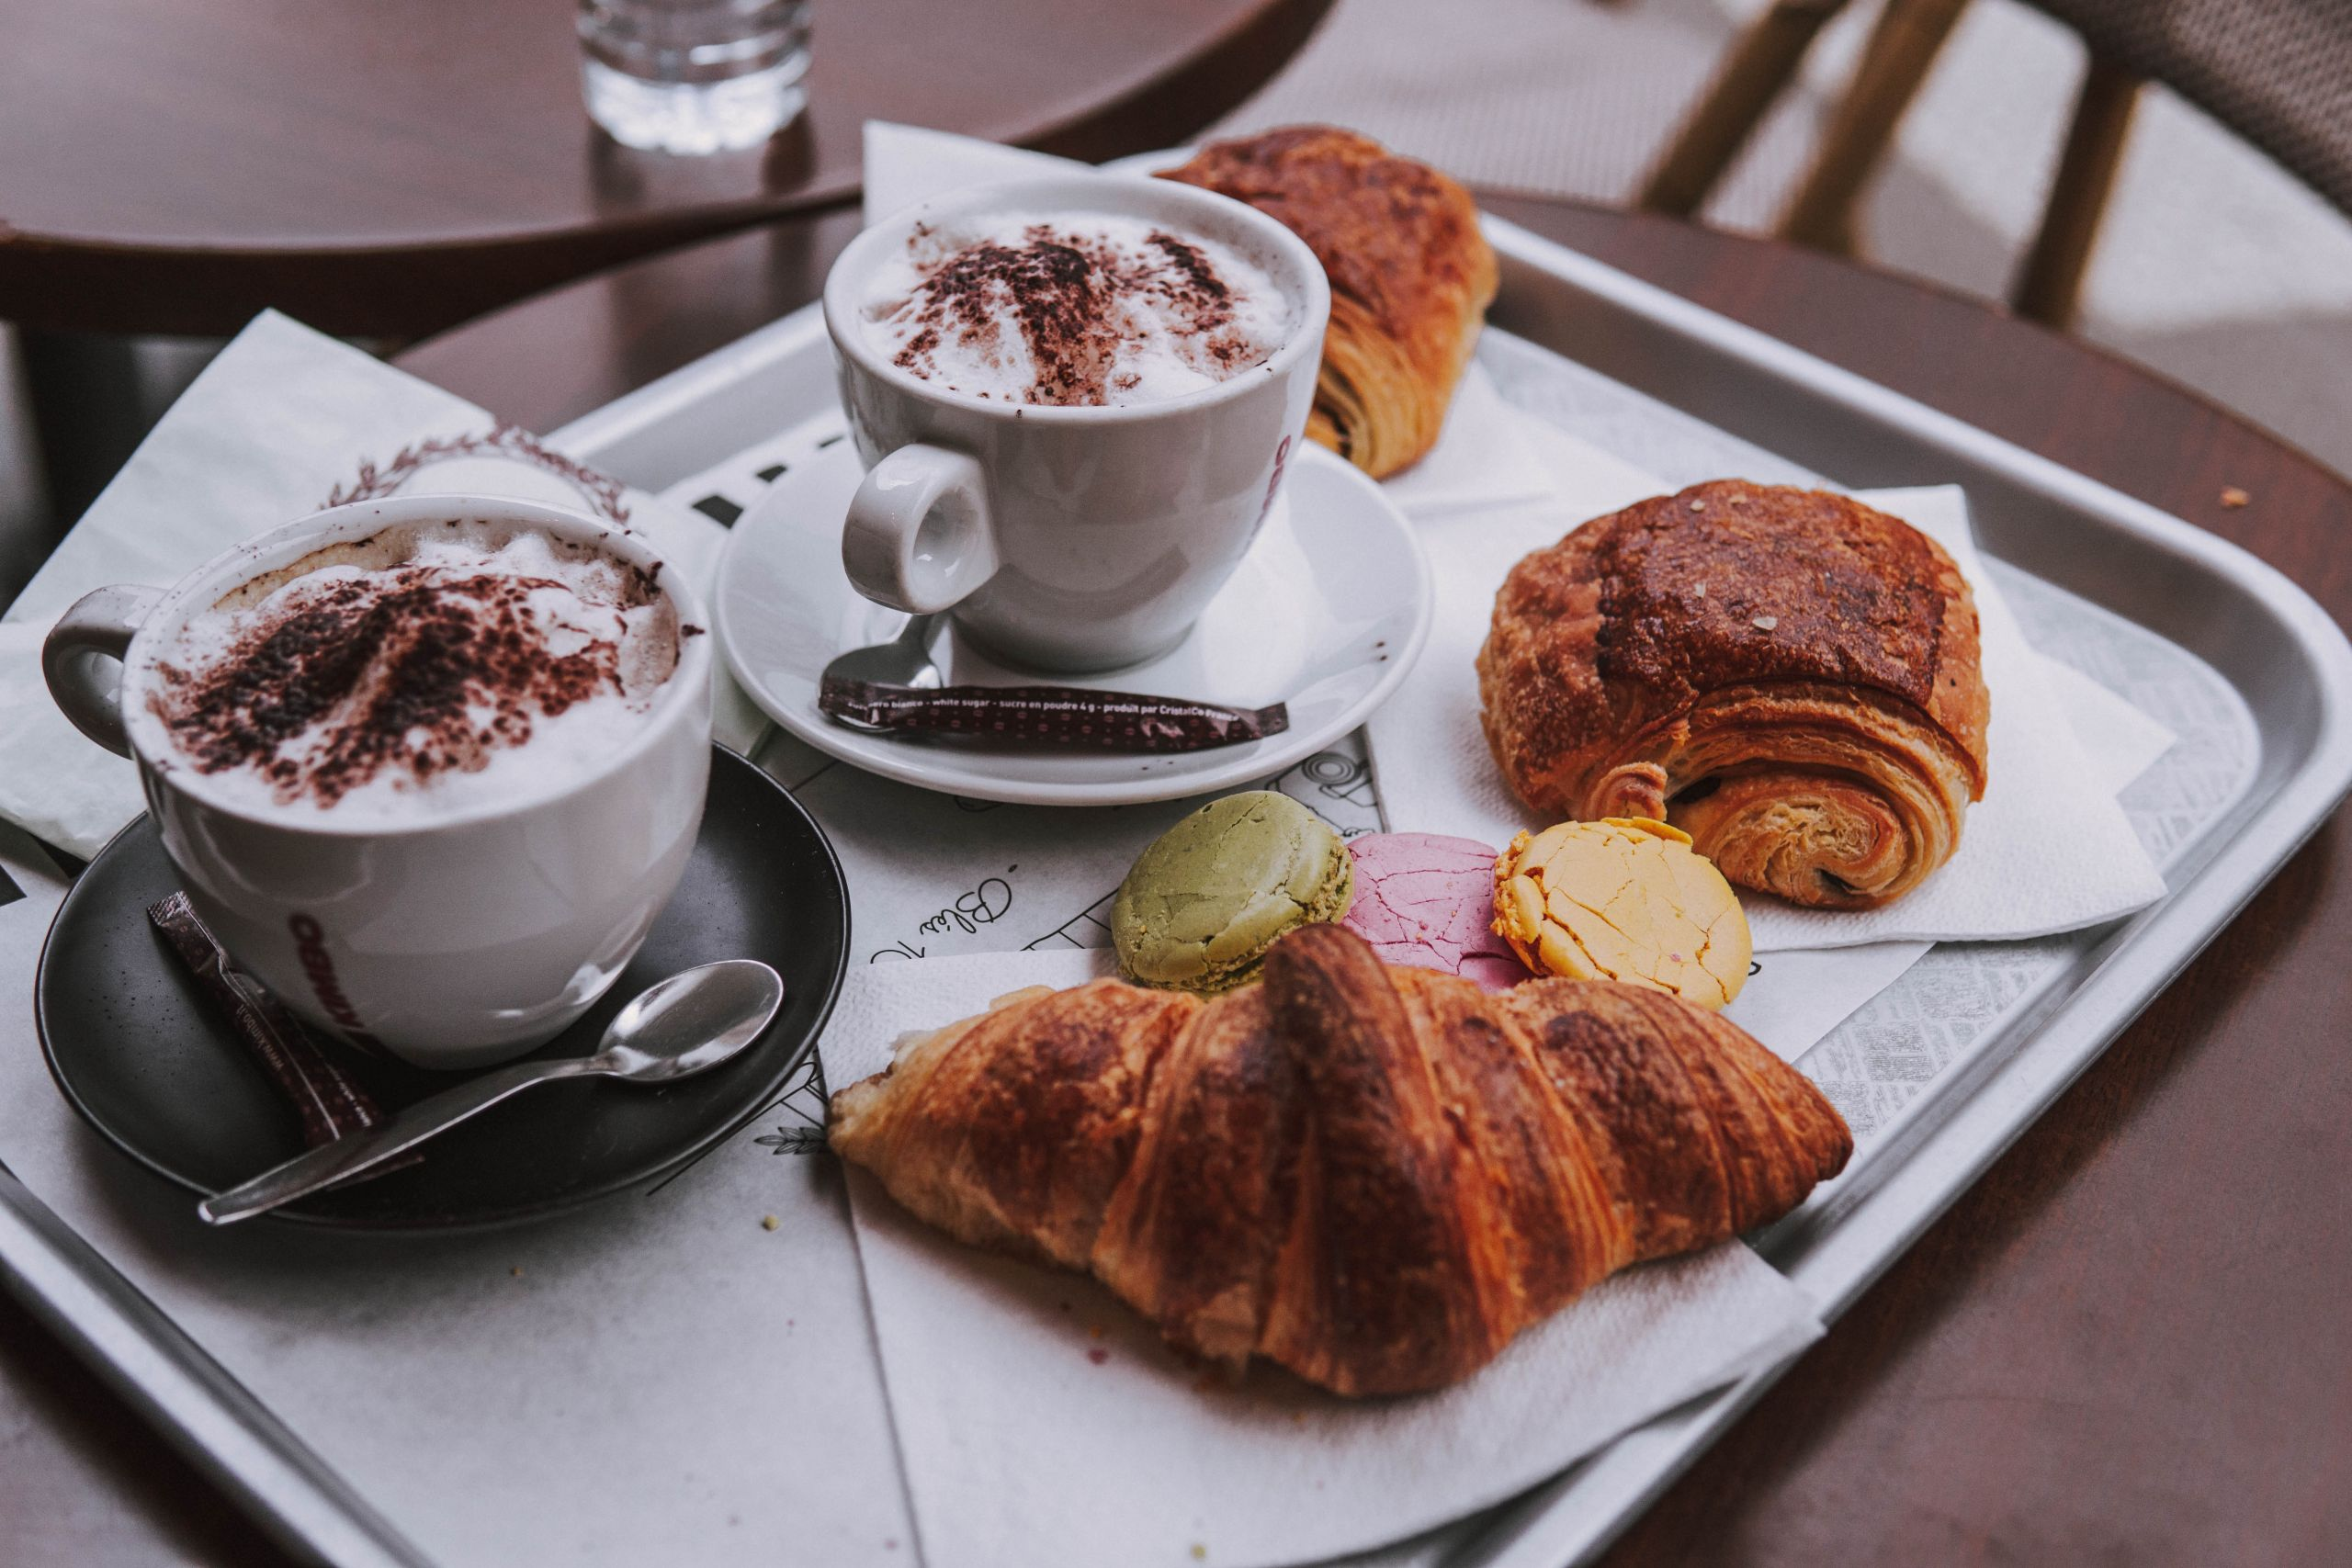 coffe and croissantes